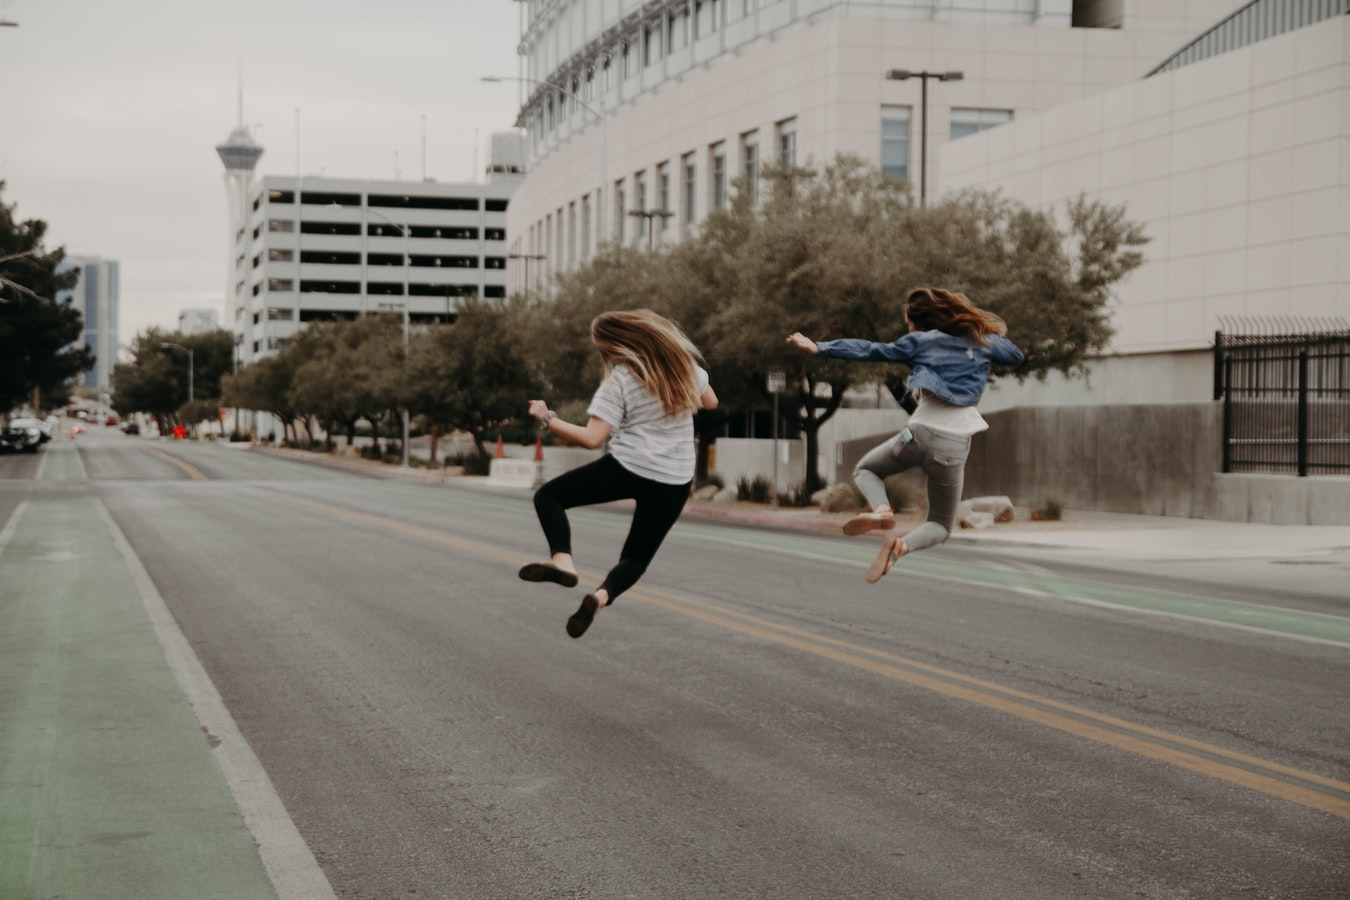 Two influencers jumping side by side in a city street.